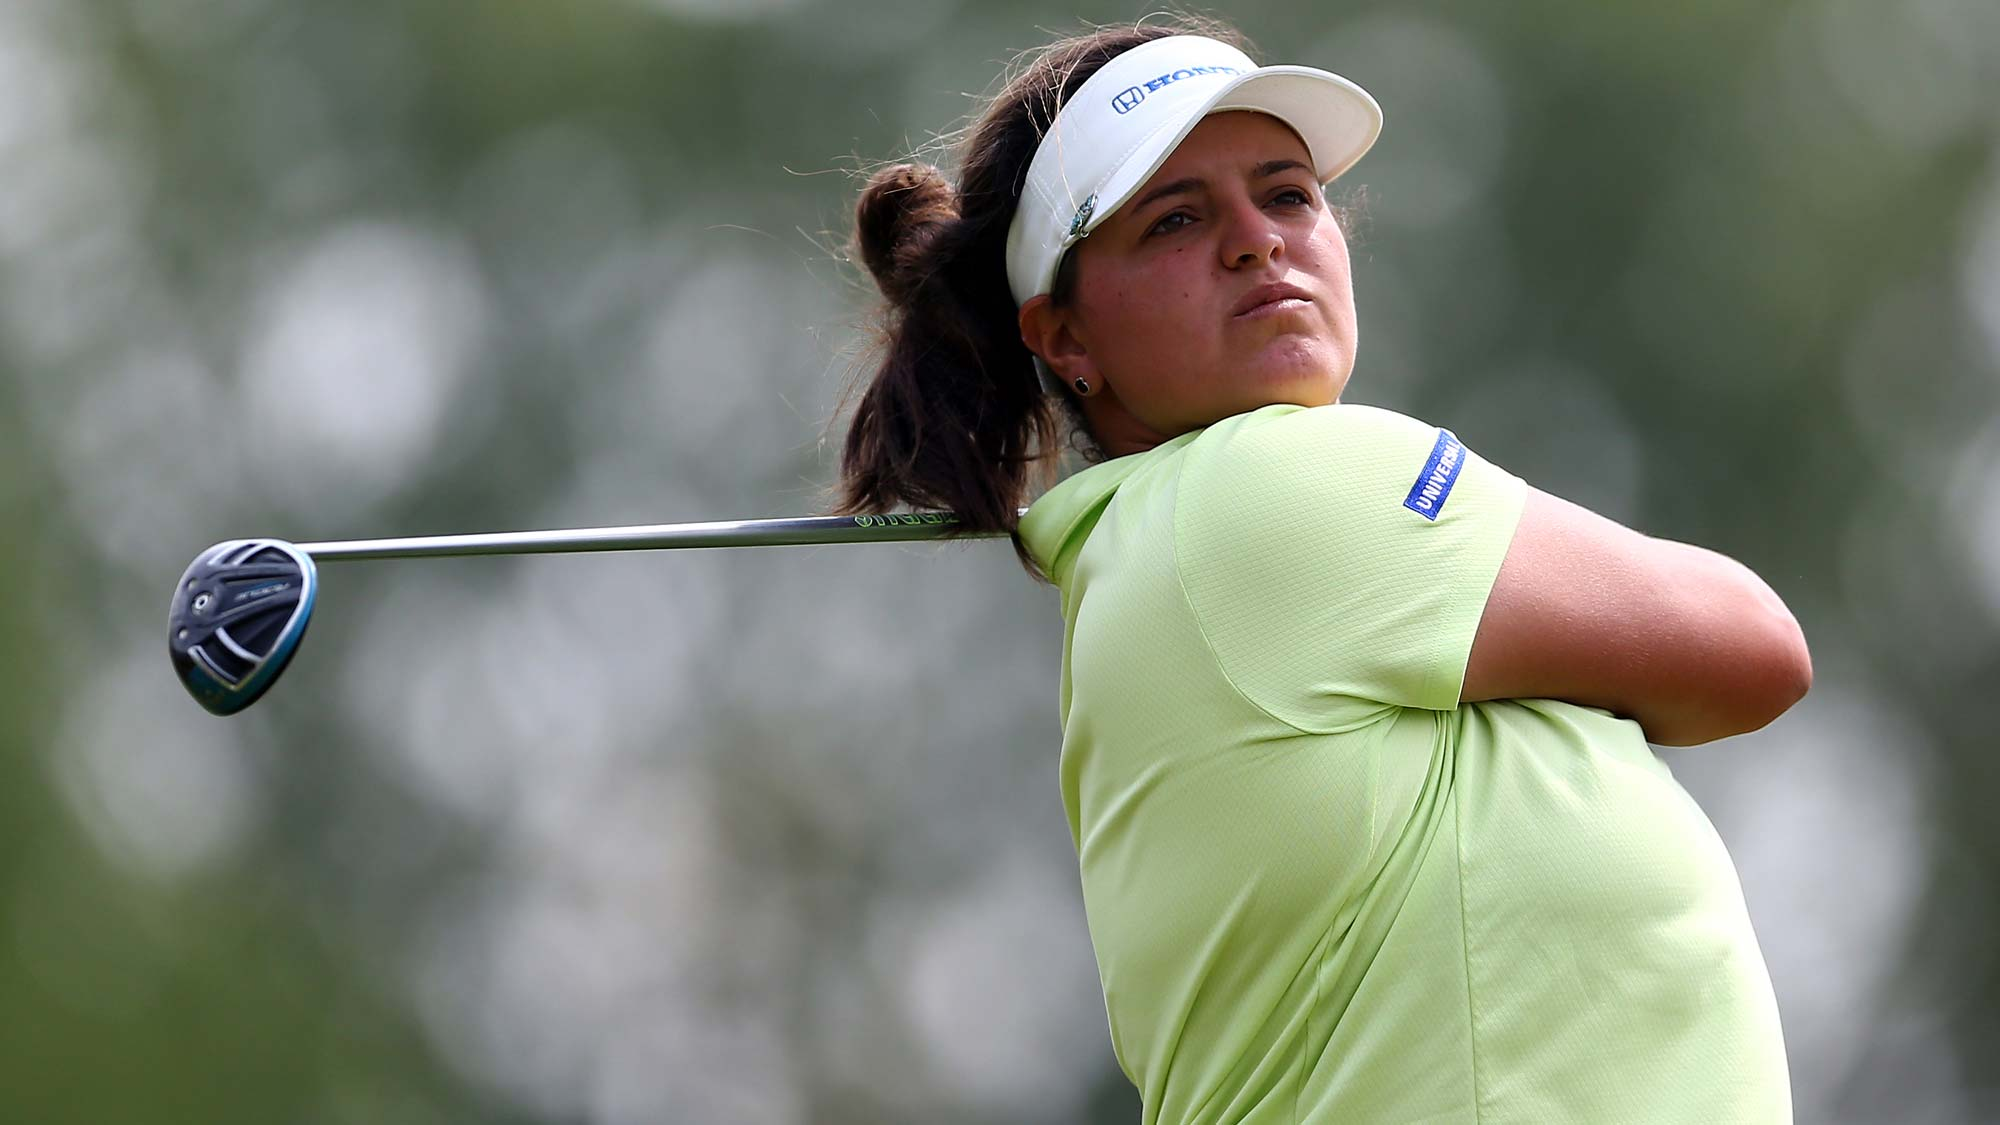 Maria Torres of Puerto Rico hits her tee shot on the 4th hole during the second round of the CP Womens Open